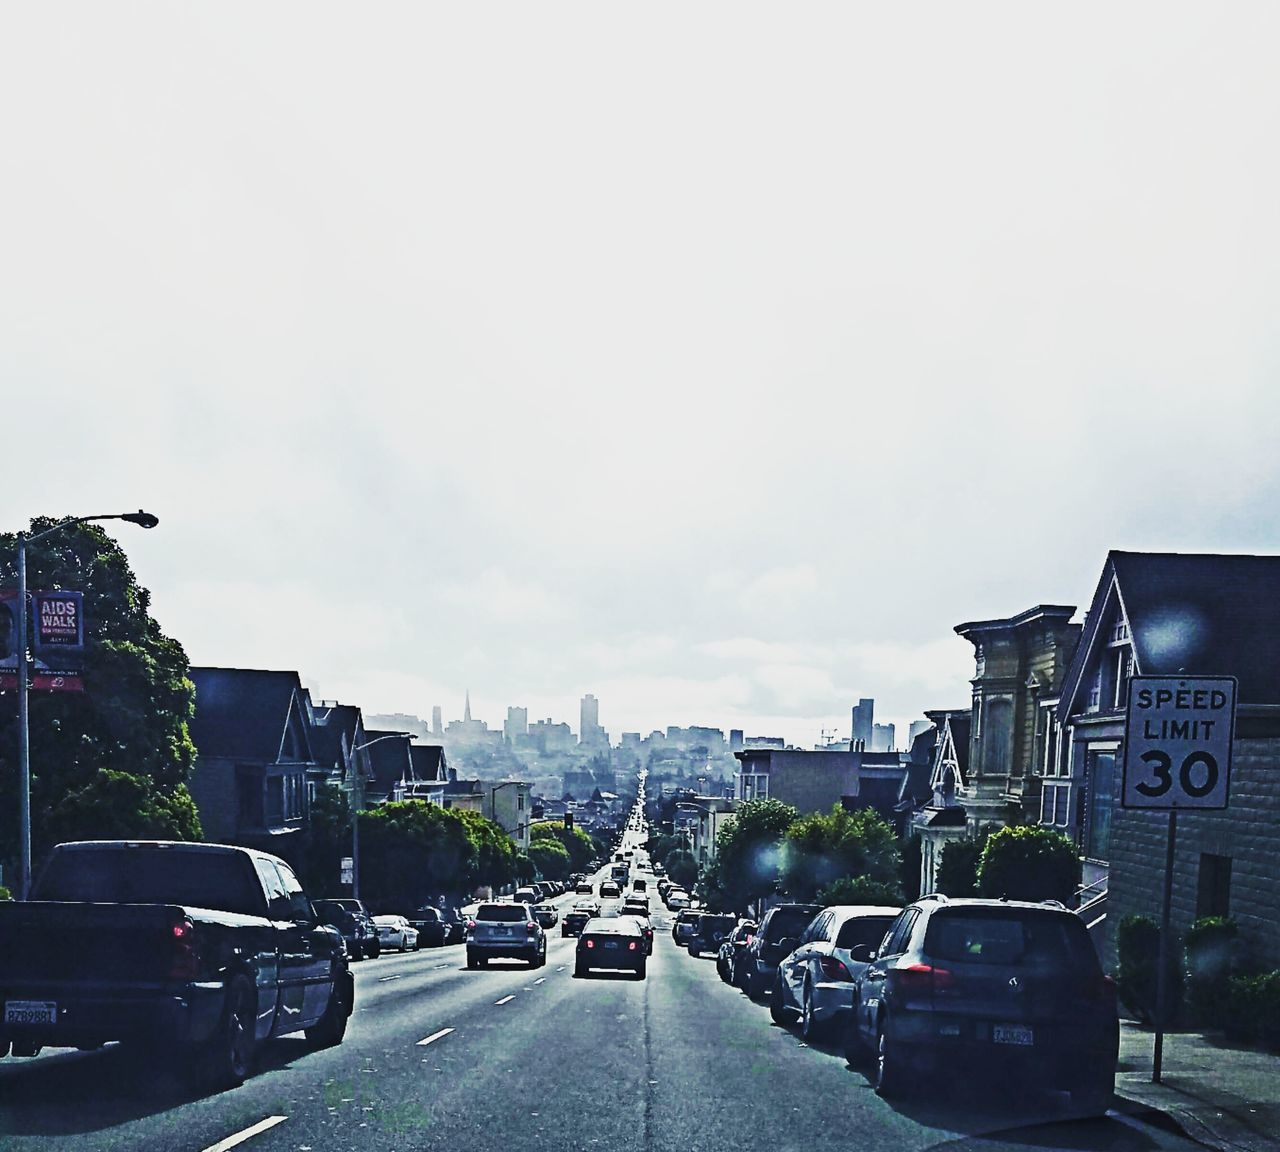 There are no speed limits on the road to happiness... Breaktherules Livelaughlove♡ Pursuitofhappiness CarpeDiem  ILOVESF Sanfrancisco